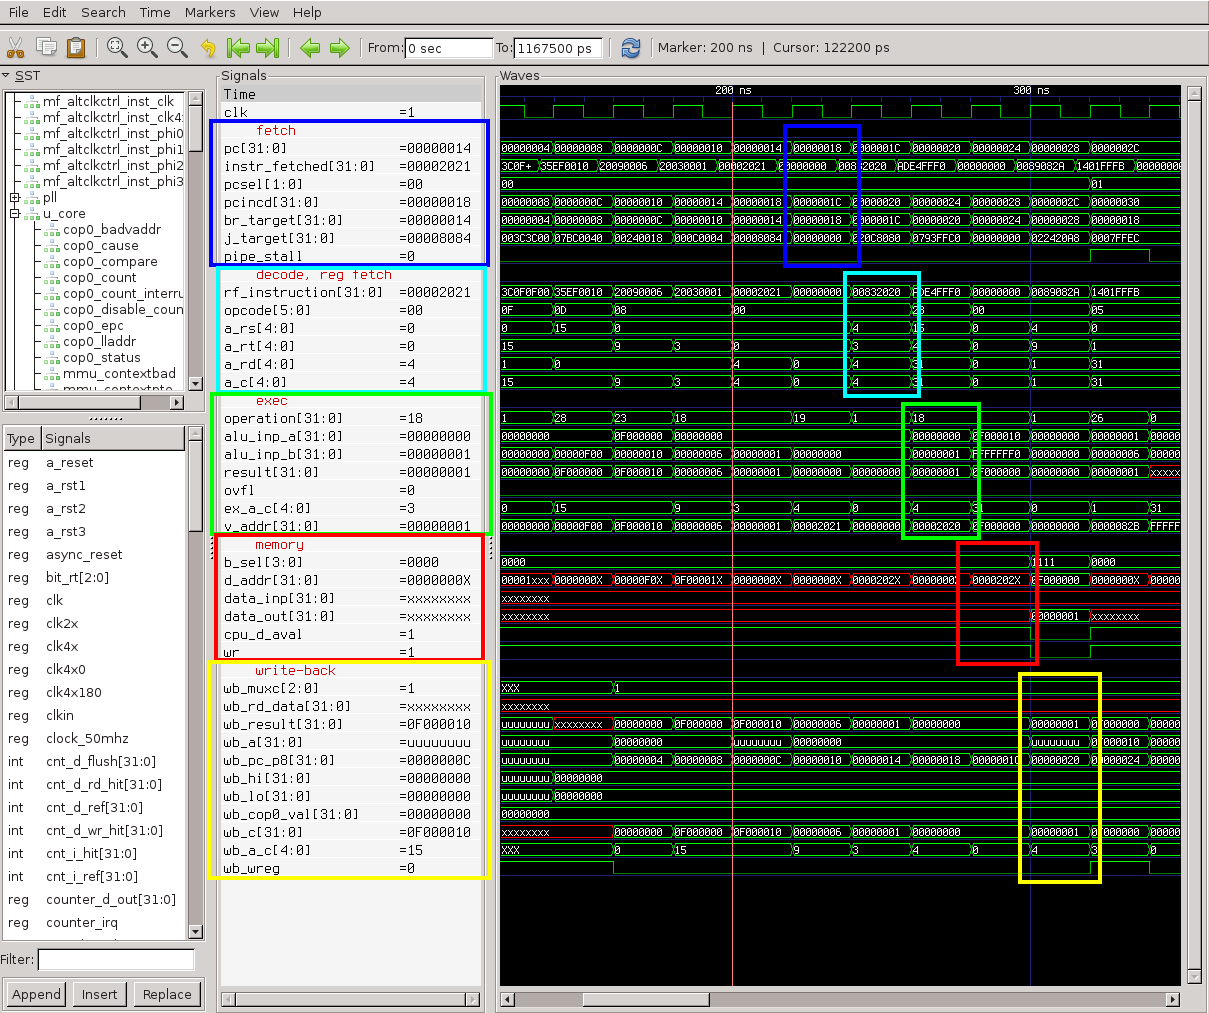 cMIPS - a VHDL model for the 5-stage pipeline, MIPS32r2 core